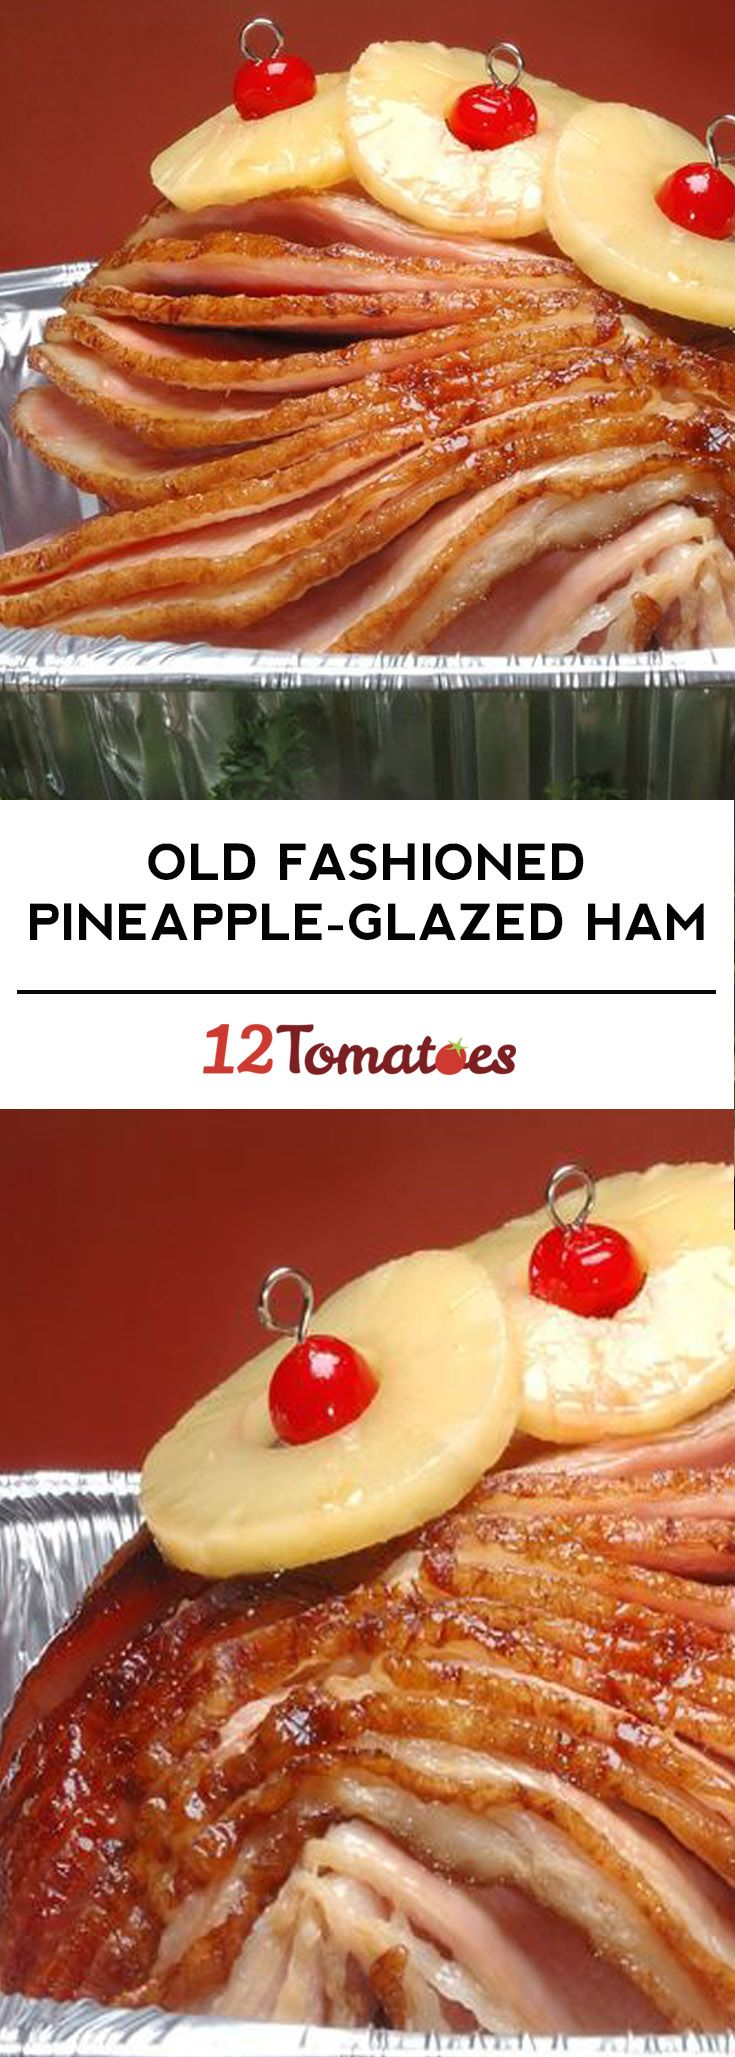 Old Fashioned Pineapple-Glazed Ham